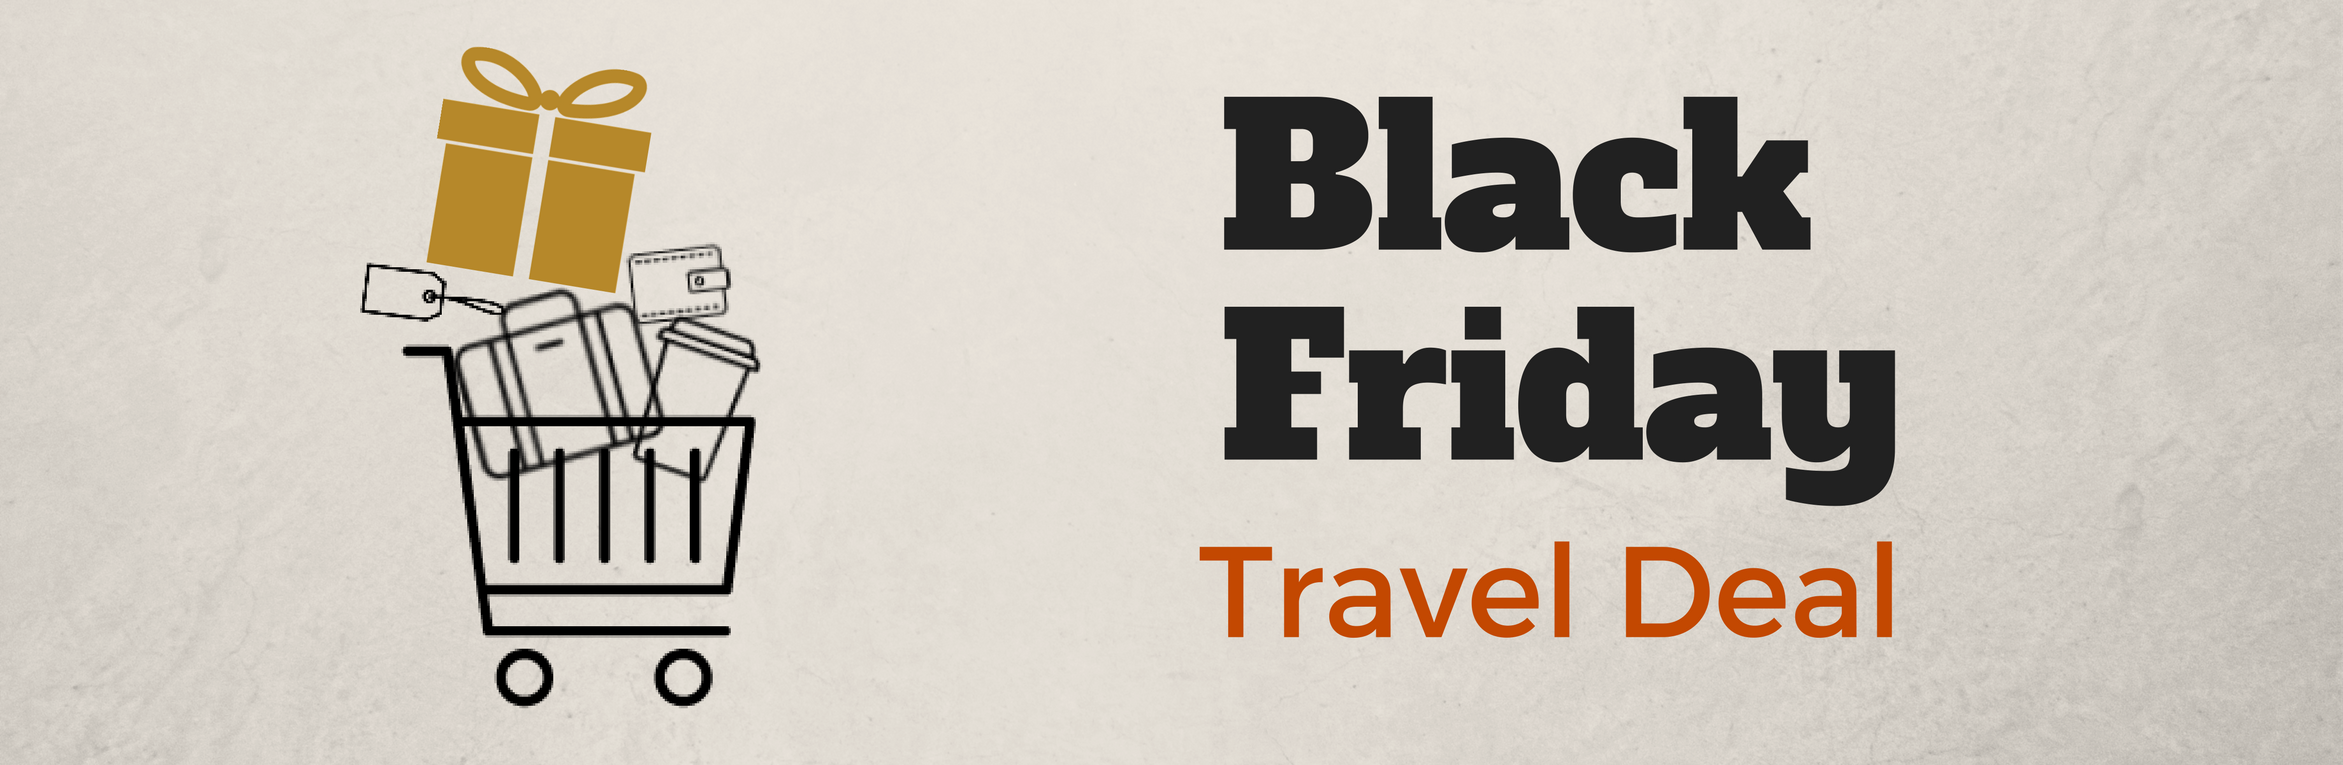 IMG : Black Friday Travel Deal – Start Packing for Europe